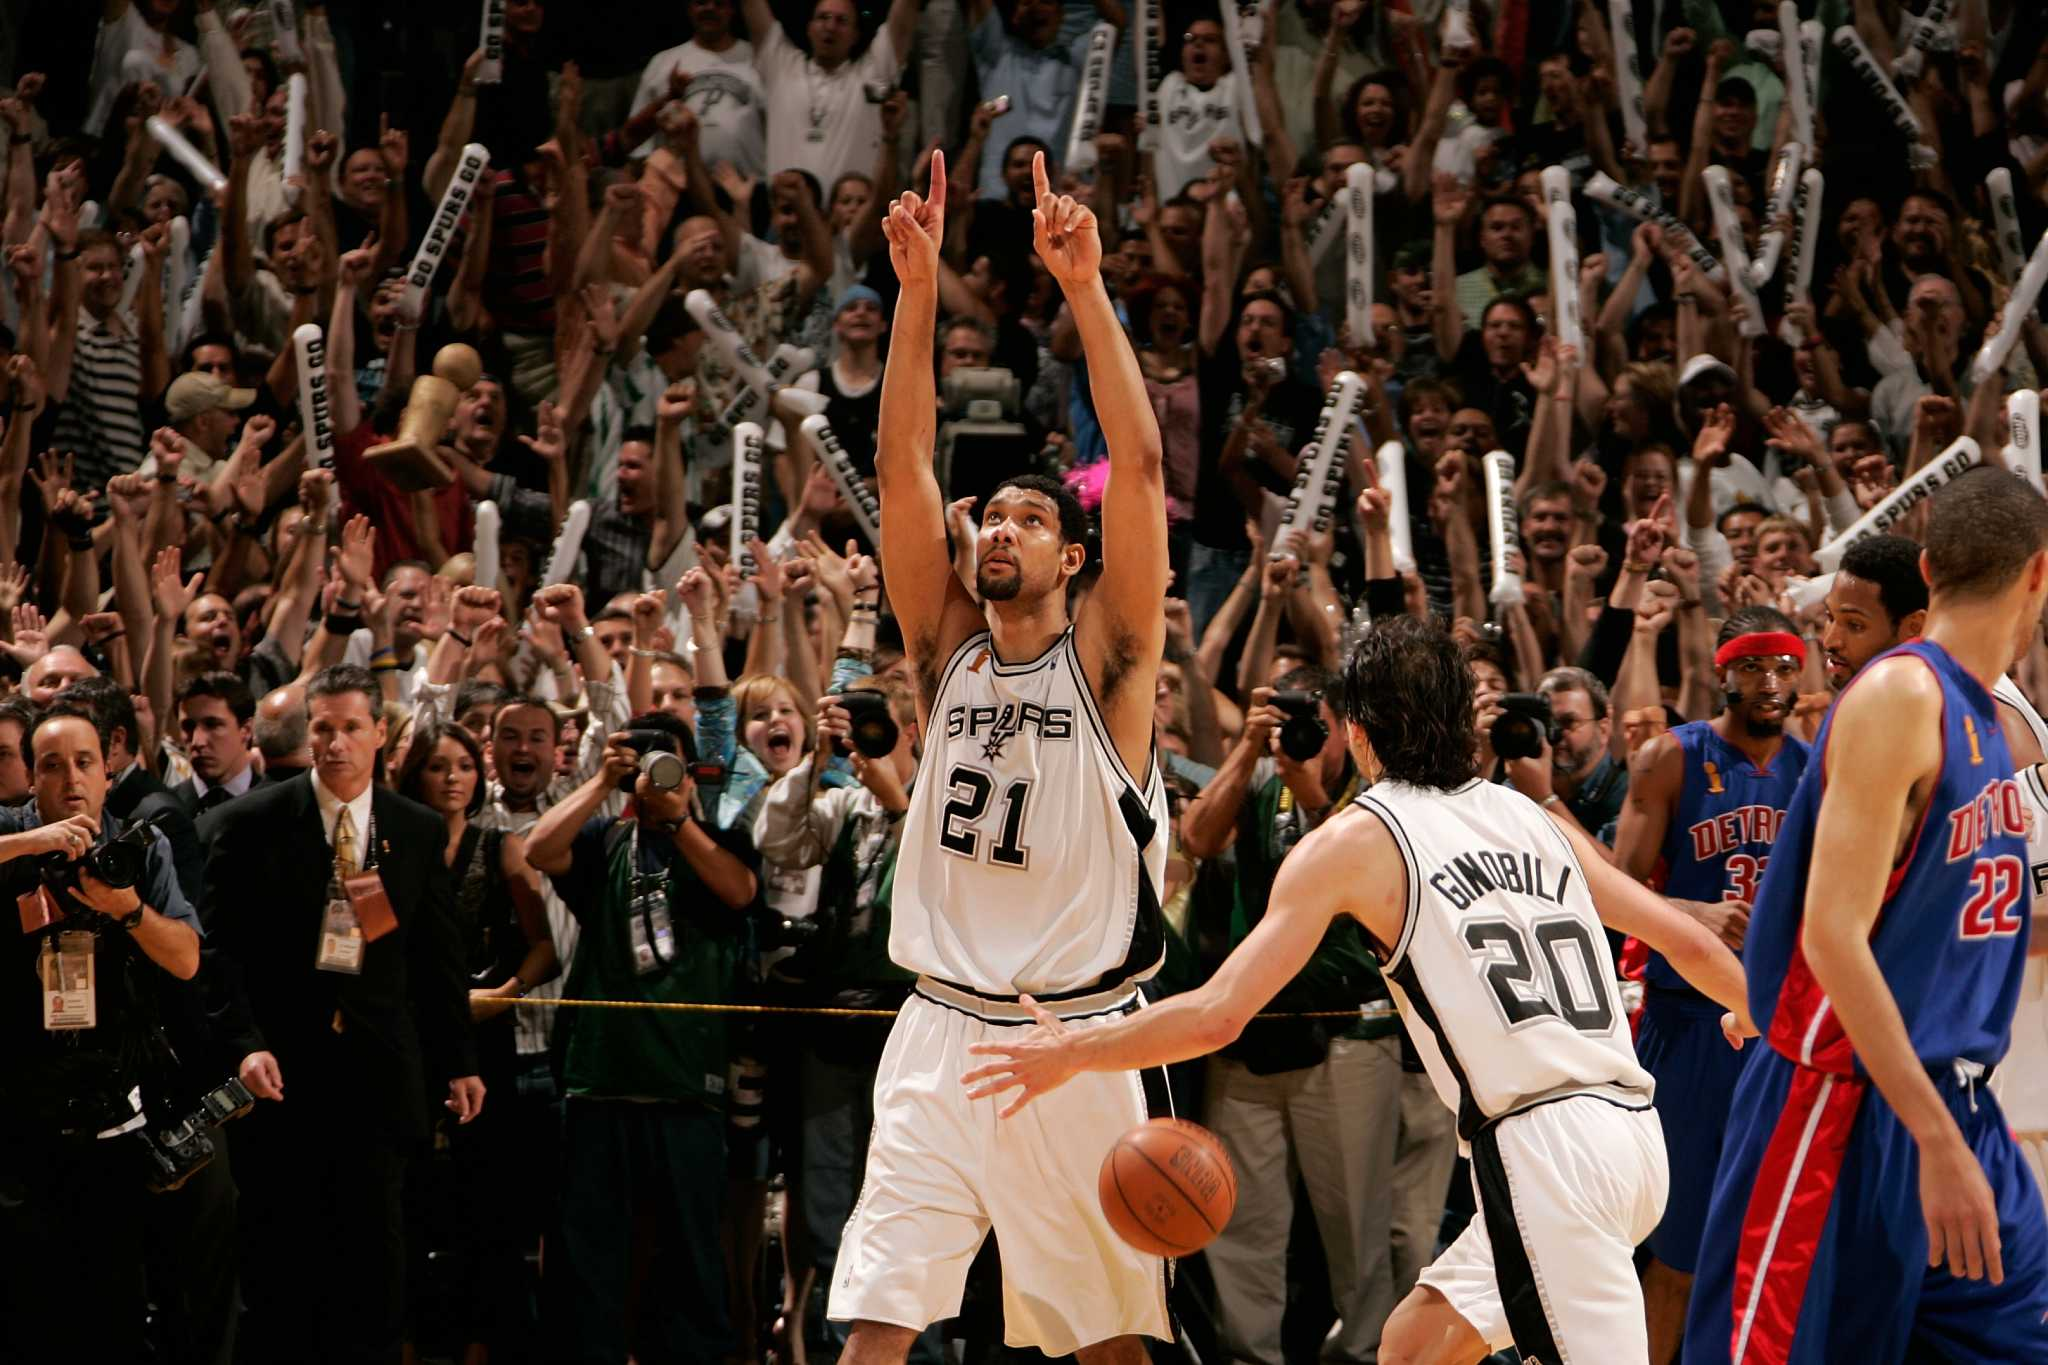 2005 NBA Finals Flashback | Spurs vs Pistons, Score, MVP, Highlights